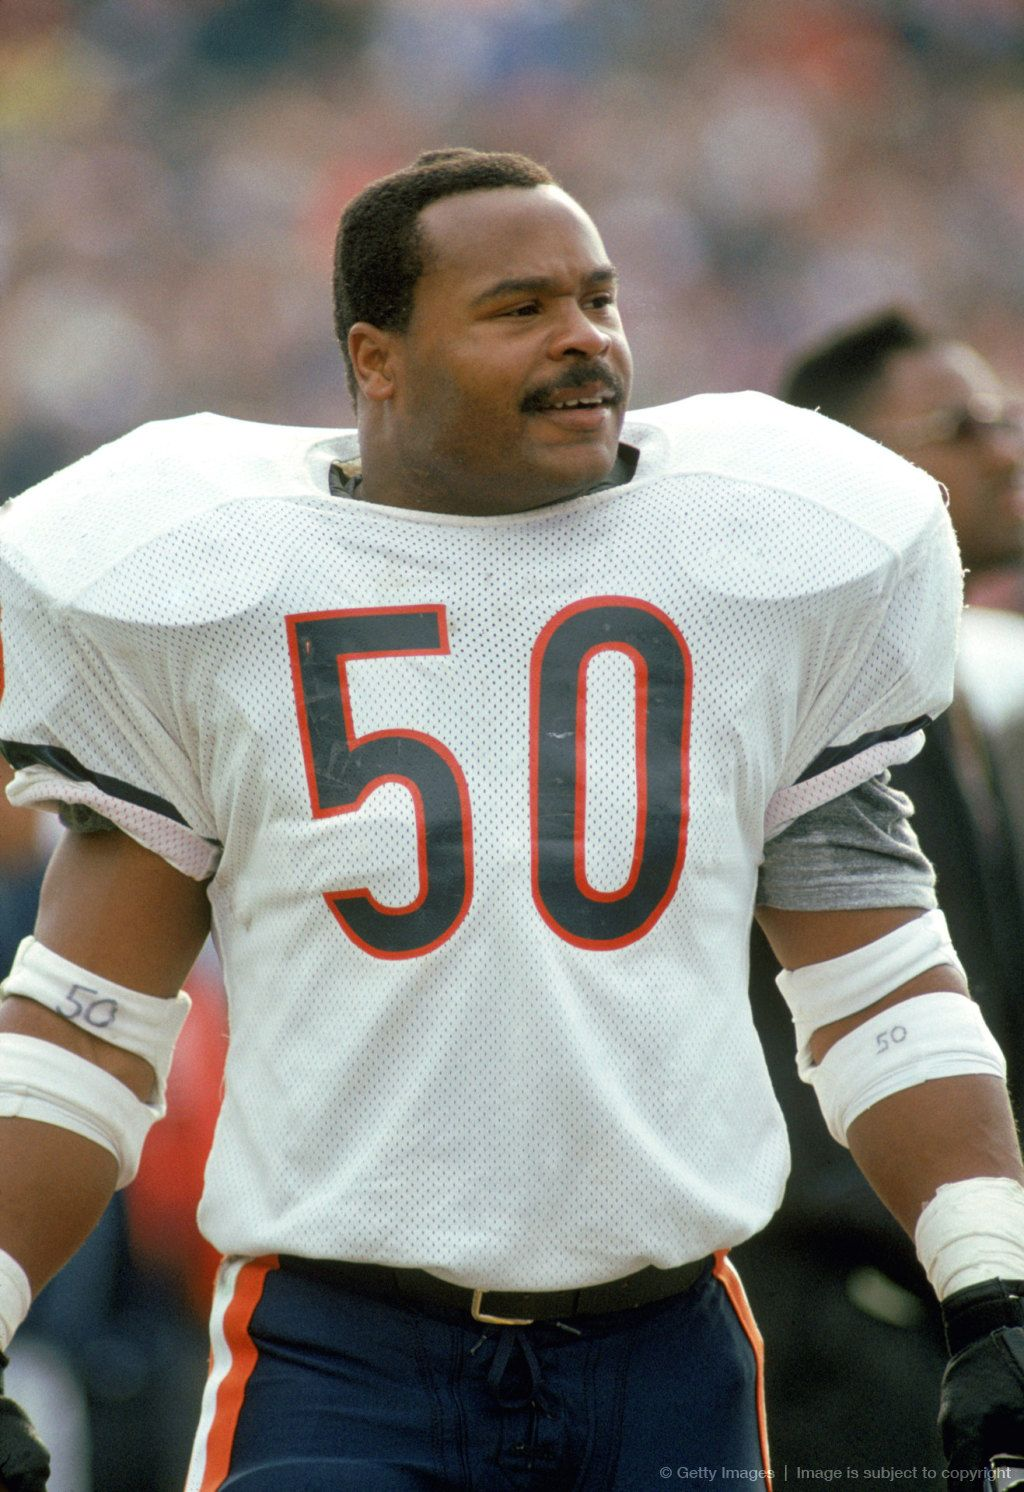 Chicago Bears Mike Singletary 50 Linebacker One Of The